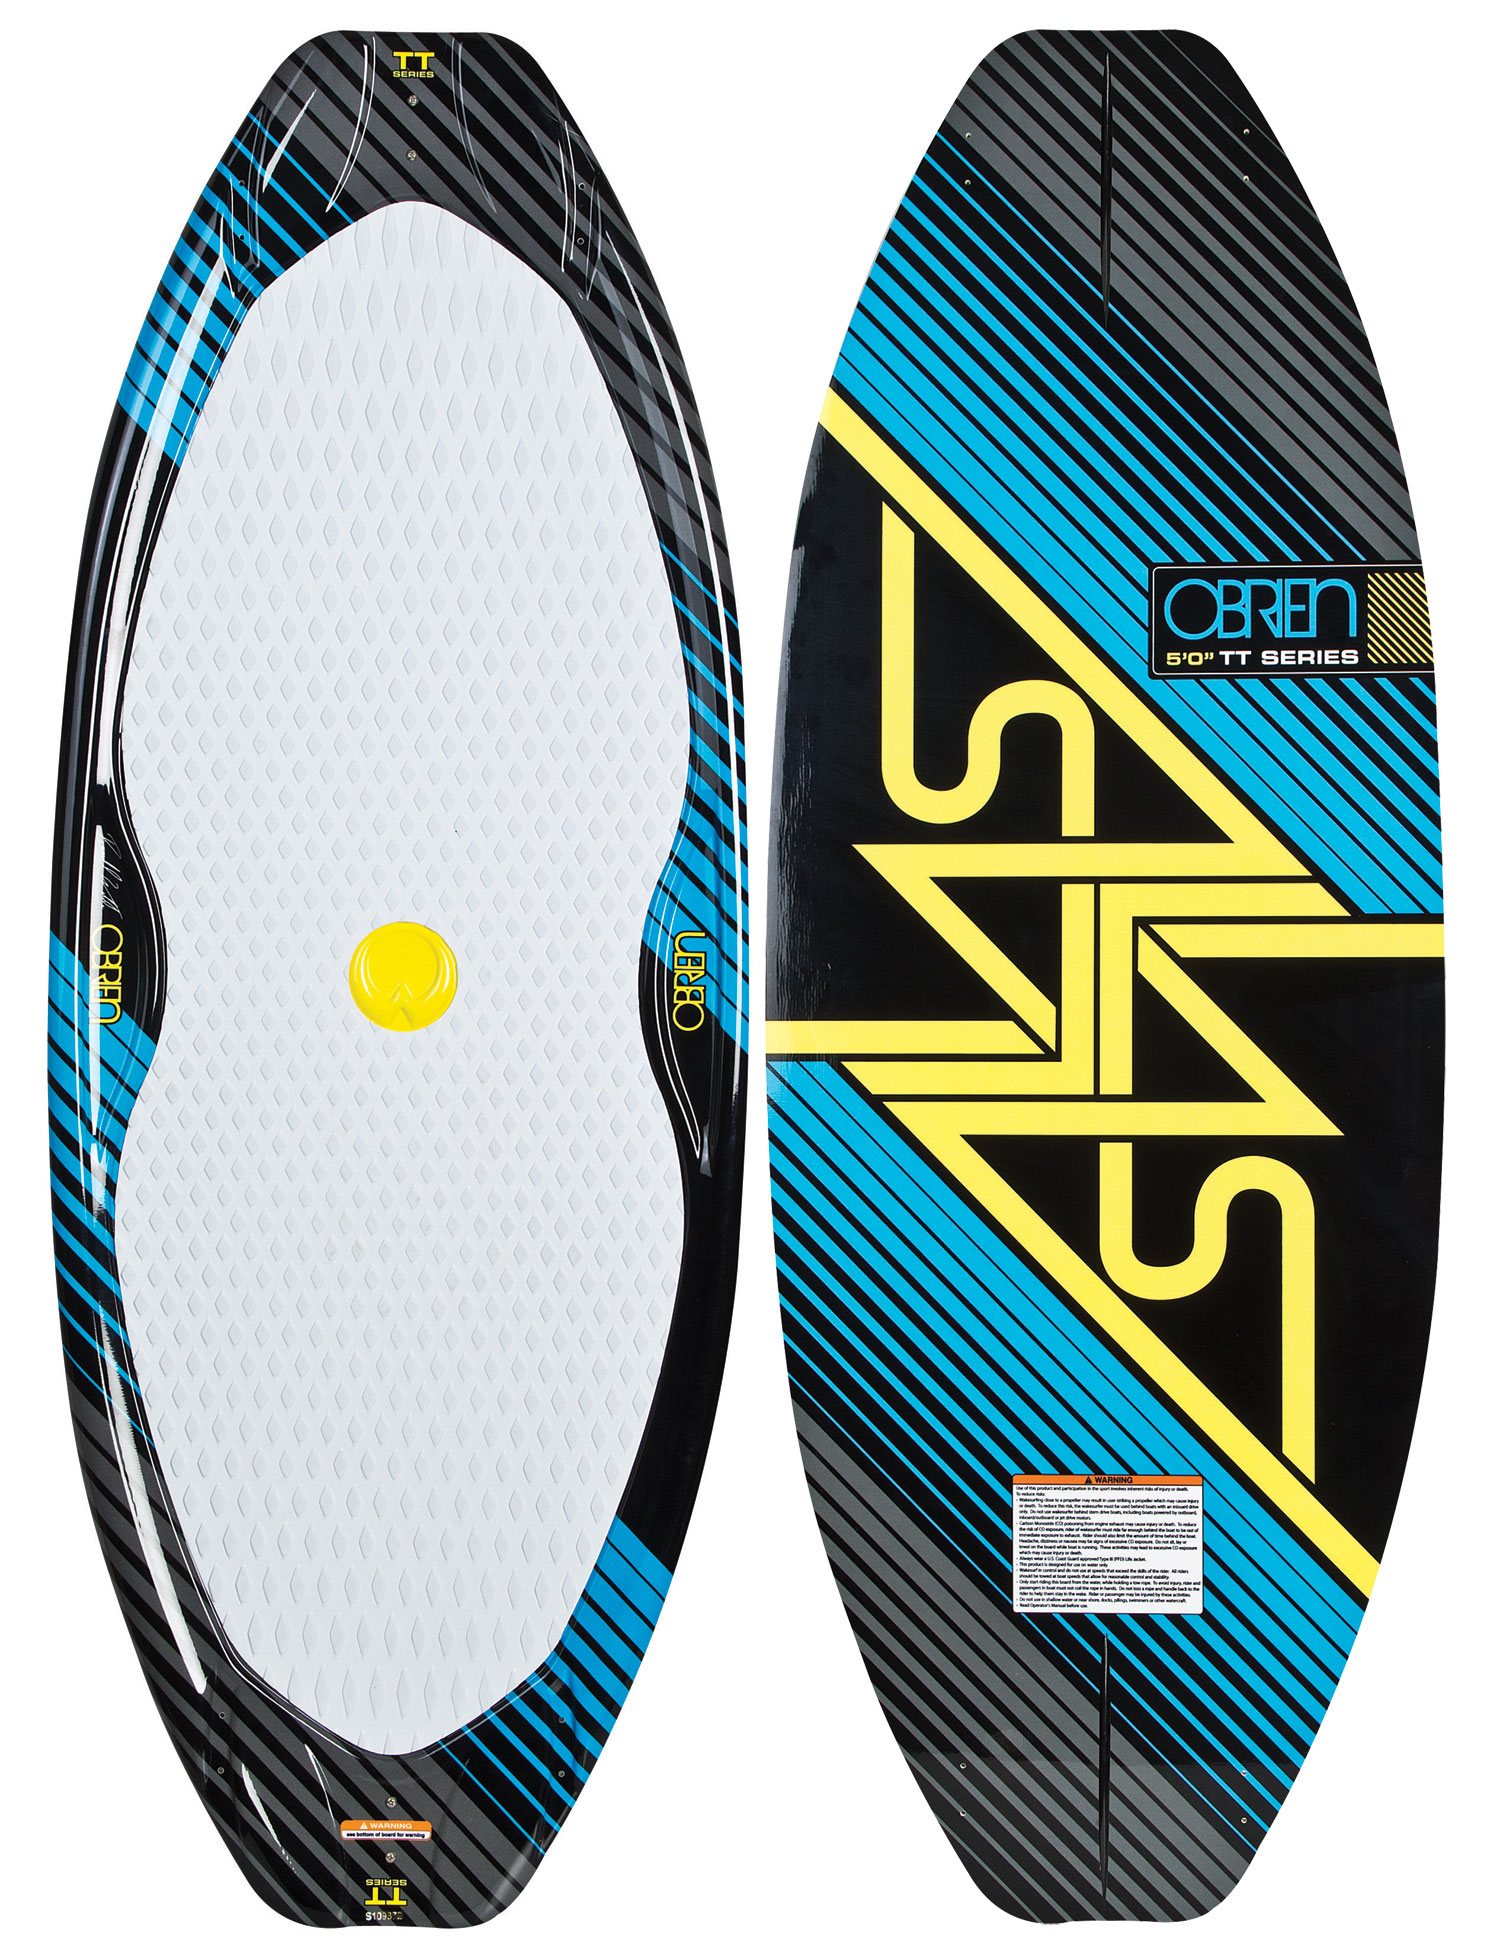 "Surf Blending the line between surfing and skating, O'Brien Alias TT wakesurfers are a true symmetrical twin tip board. Designed to be ridden centered on the board, the deck is fully dished out to give the board the feel and control of a concave skate. A squash tip and tail give the board push and let you pump from way back on the wake. Ride switch, slide the lip, and spin 3s like never before. Quad side fins give just the right edge bite for most riders, but advanced riders can choose to run a single center fin or no fins at all.Key Features of the O'Brien Alias TT Wakesurfer: Length (cm): 4' 6"" Mid Width (cm): 51.26 Rocker (cm): 1.57"" 3 Stage - $197.95"